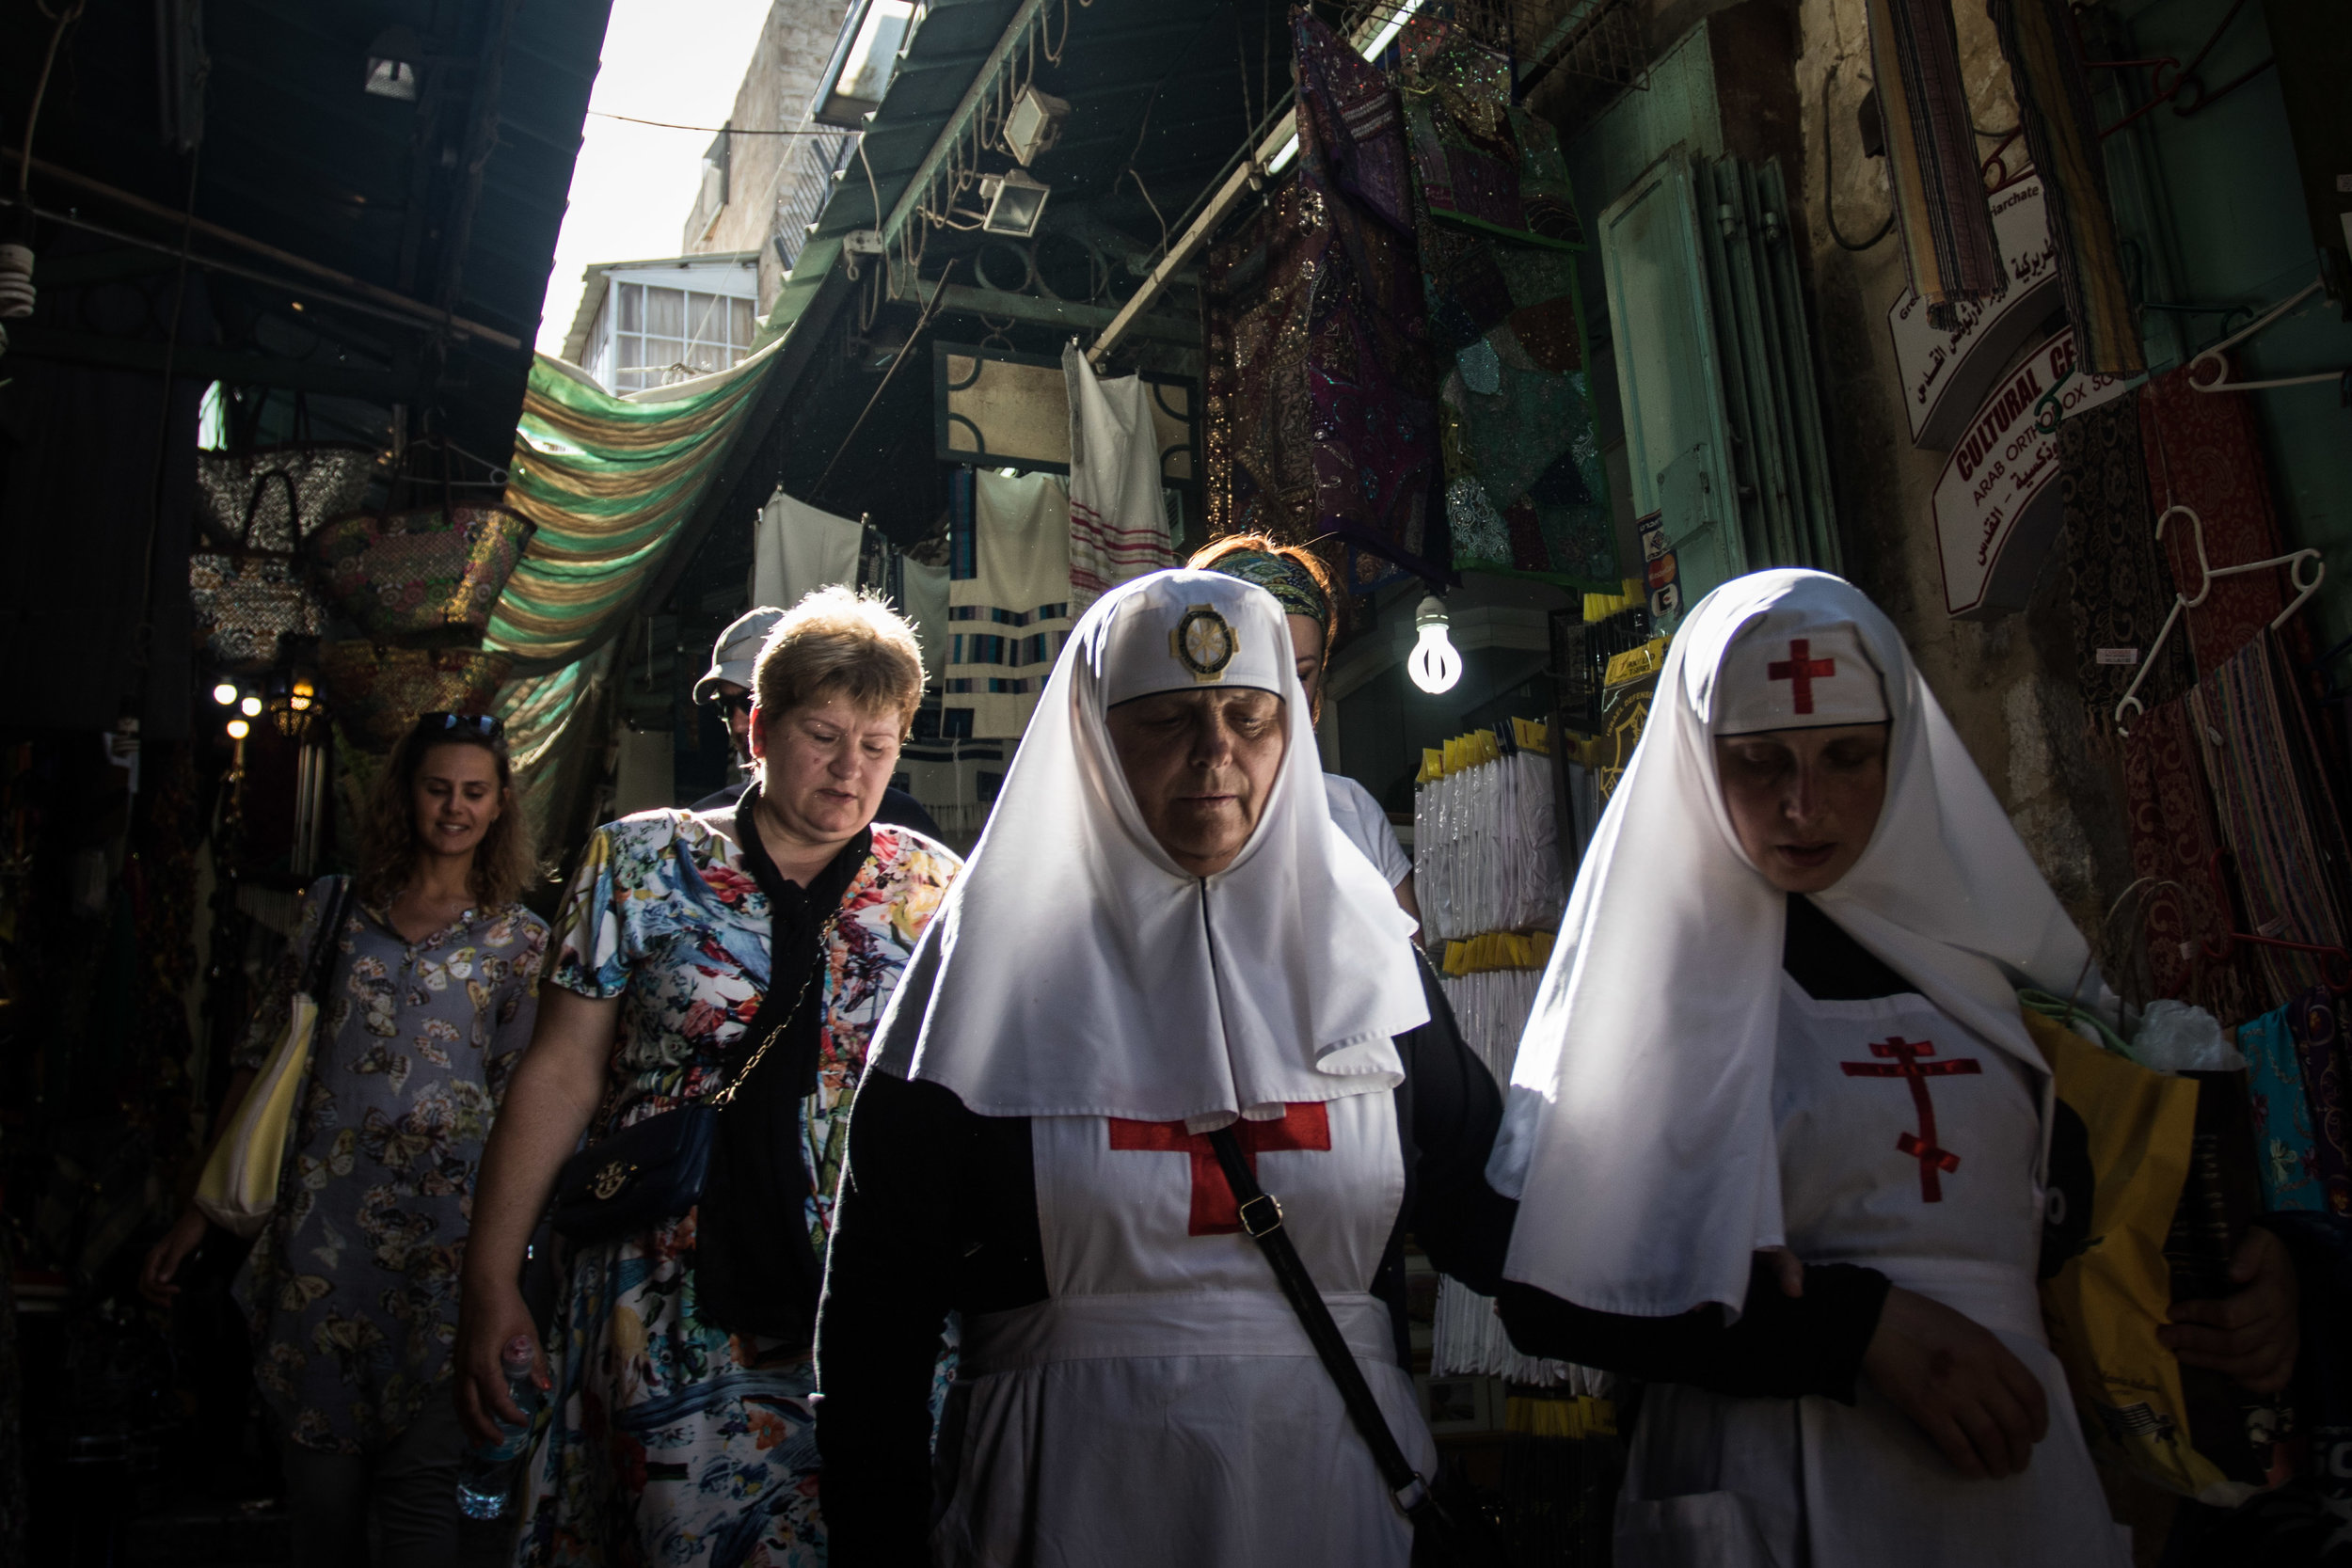 A pair of Christian nuns walk in front of a group of tourists through the alleyways of the Old City near merchandise shops with items designed to attract visitors of all faiths, July 12, 2016.